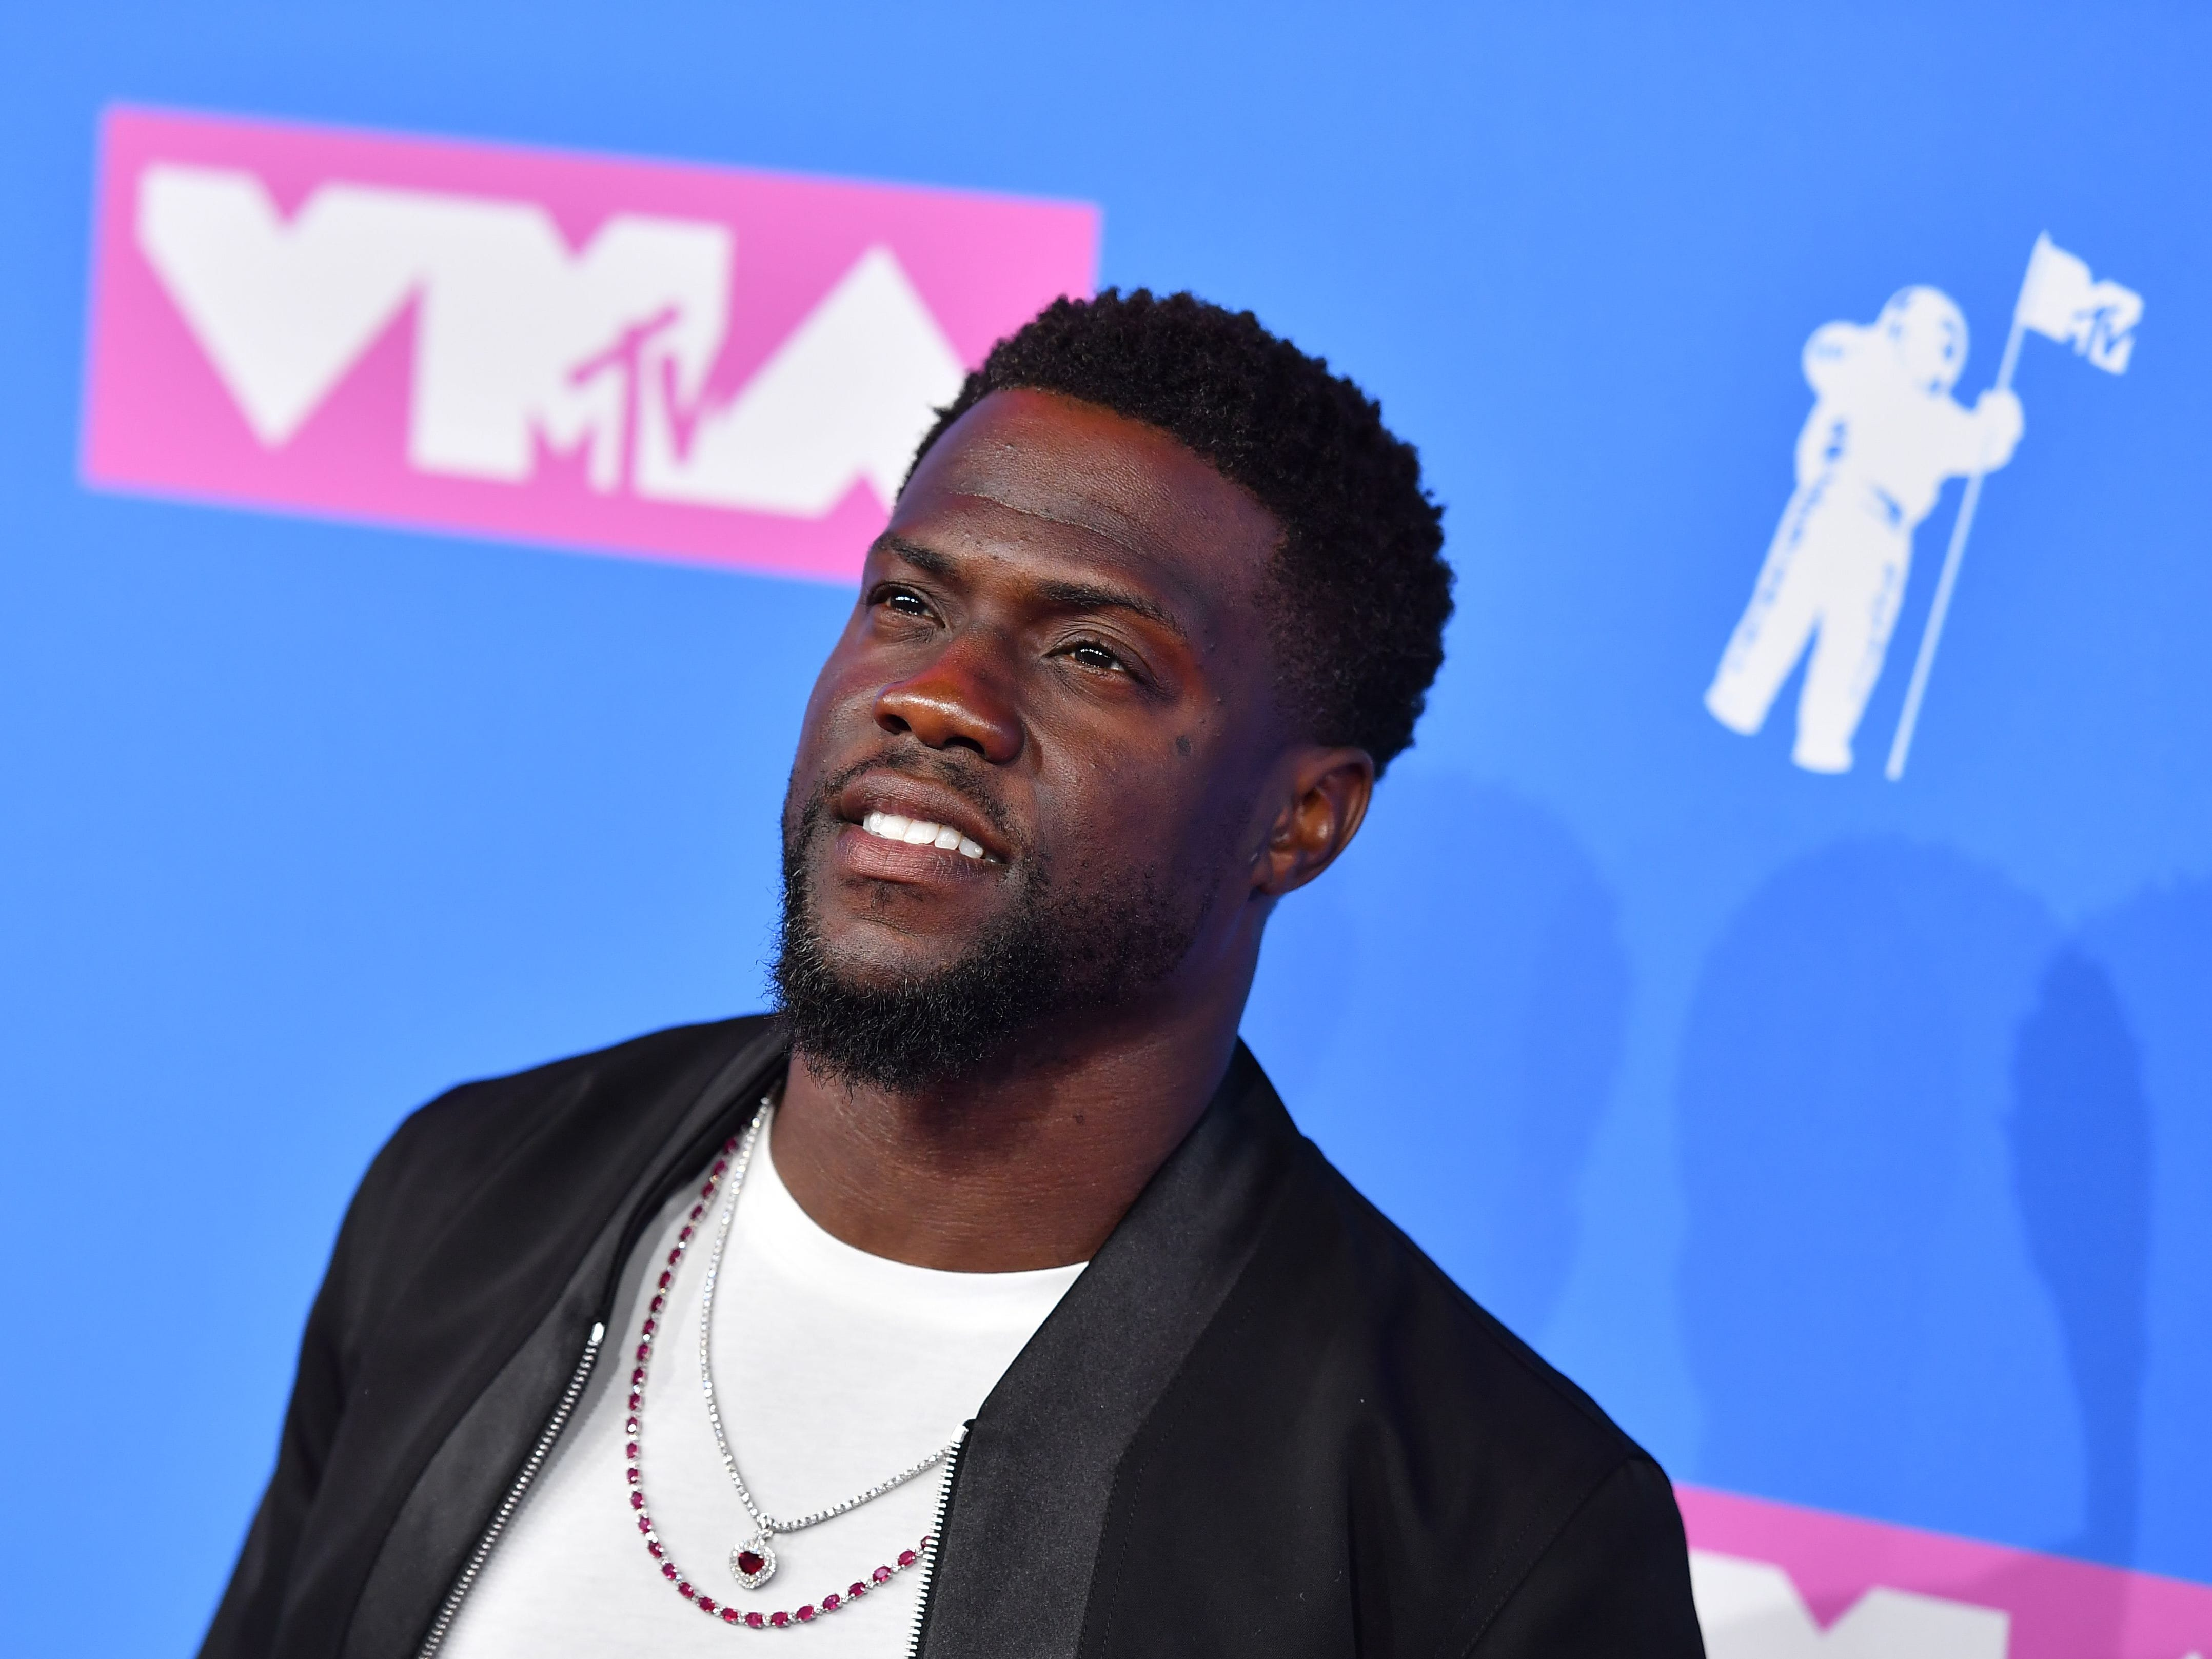 (FILES) In this file photo taken on August 20, 2018, US actor/comedian Kevin Hart attends the 2018 MTV Video Music Awards at Radio City Music Hall on in New York City. - Hollywood's biggest night -- the Oscars -- is set to take place in Febuary 2019 without a host for the first time in 30 years, after comedian Kevin Hart pulled out of the gig and no suitable replacement was found. Though organizers have yet to confirm the plans, entertainment insiders say the show's producers are forging ahead with preparations for the 91st Academy Awards on February 24 with no emcee. (Photo by ANGELA WEISS / AFP)ANGELA WEISS/AFP/Getty Images ORG XMIT: The Oscar ORIG FILE ID: AFP_1CE66G